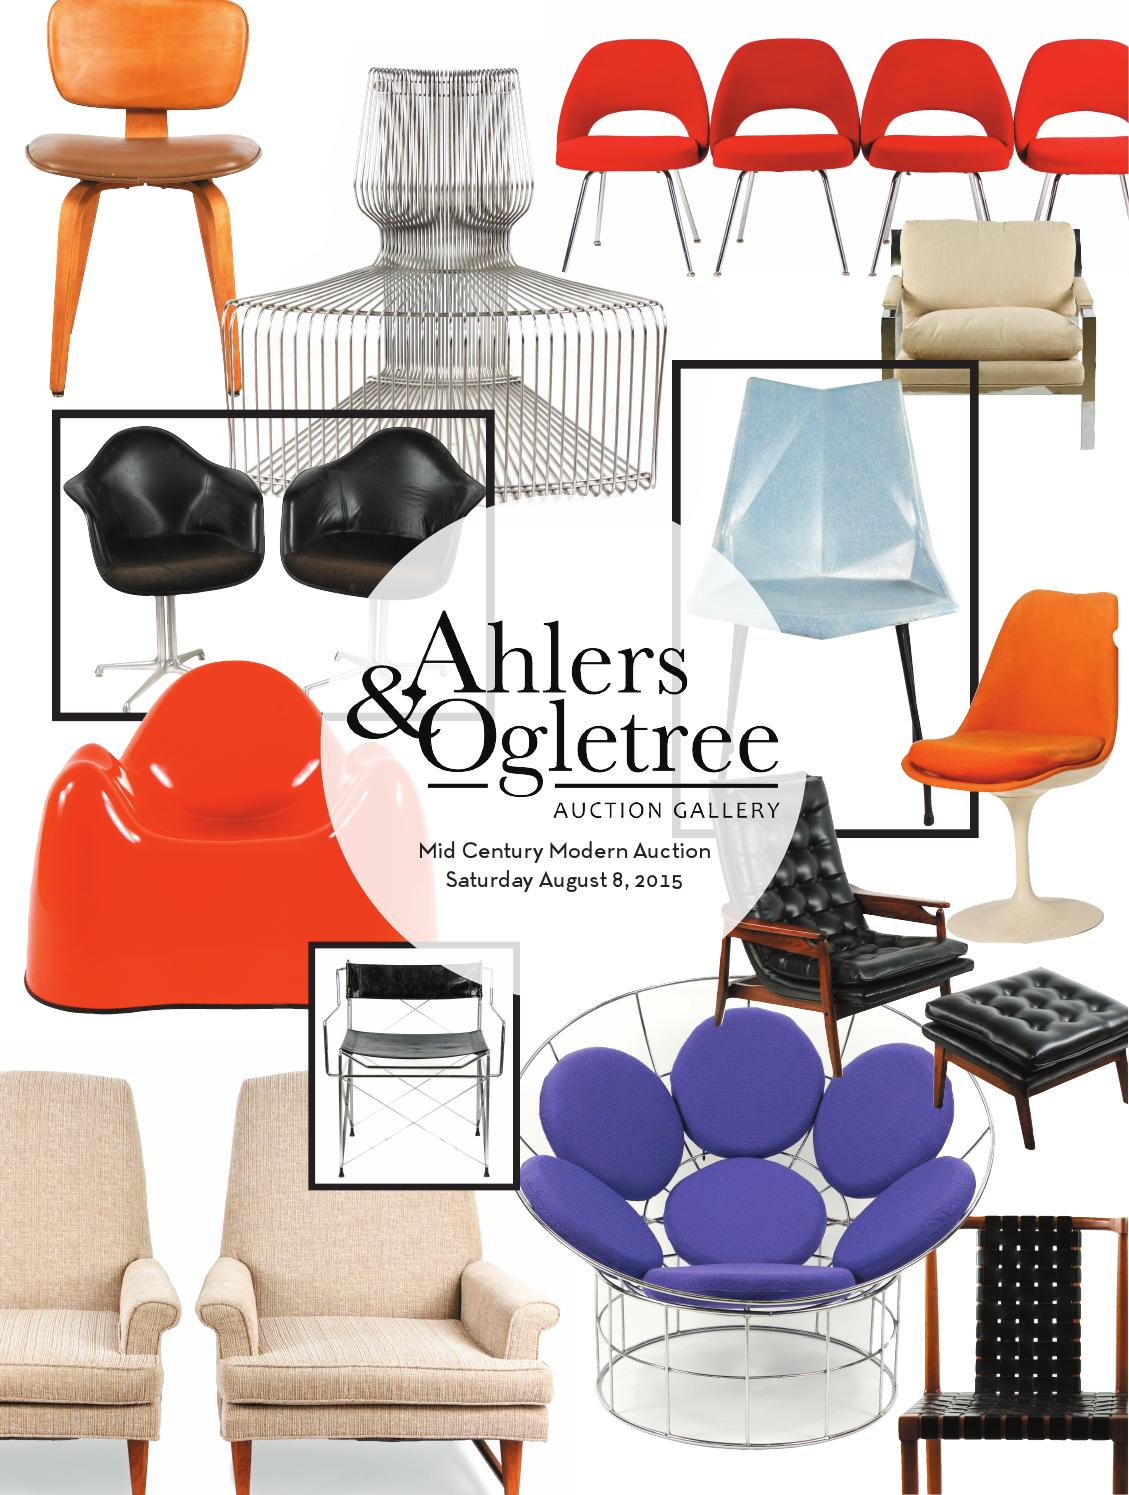 Ahlers & Ogletree Auction Gallery August 2015 Mid Century